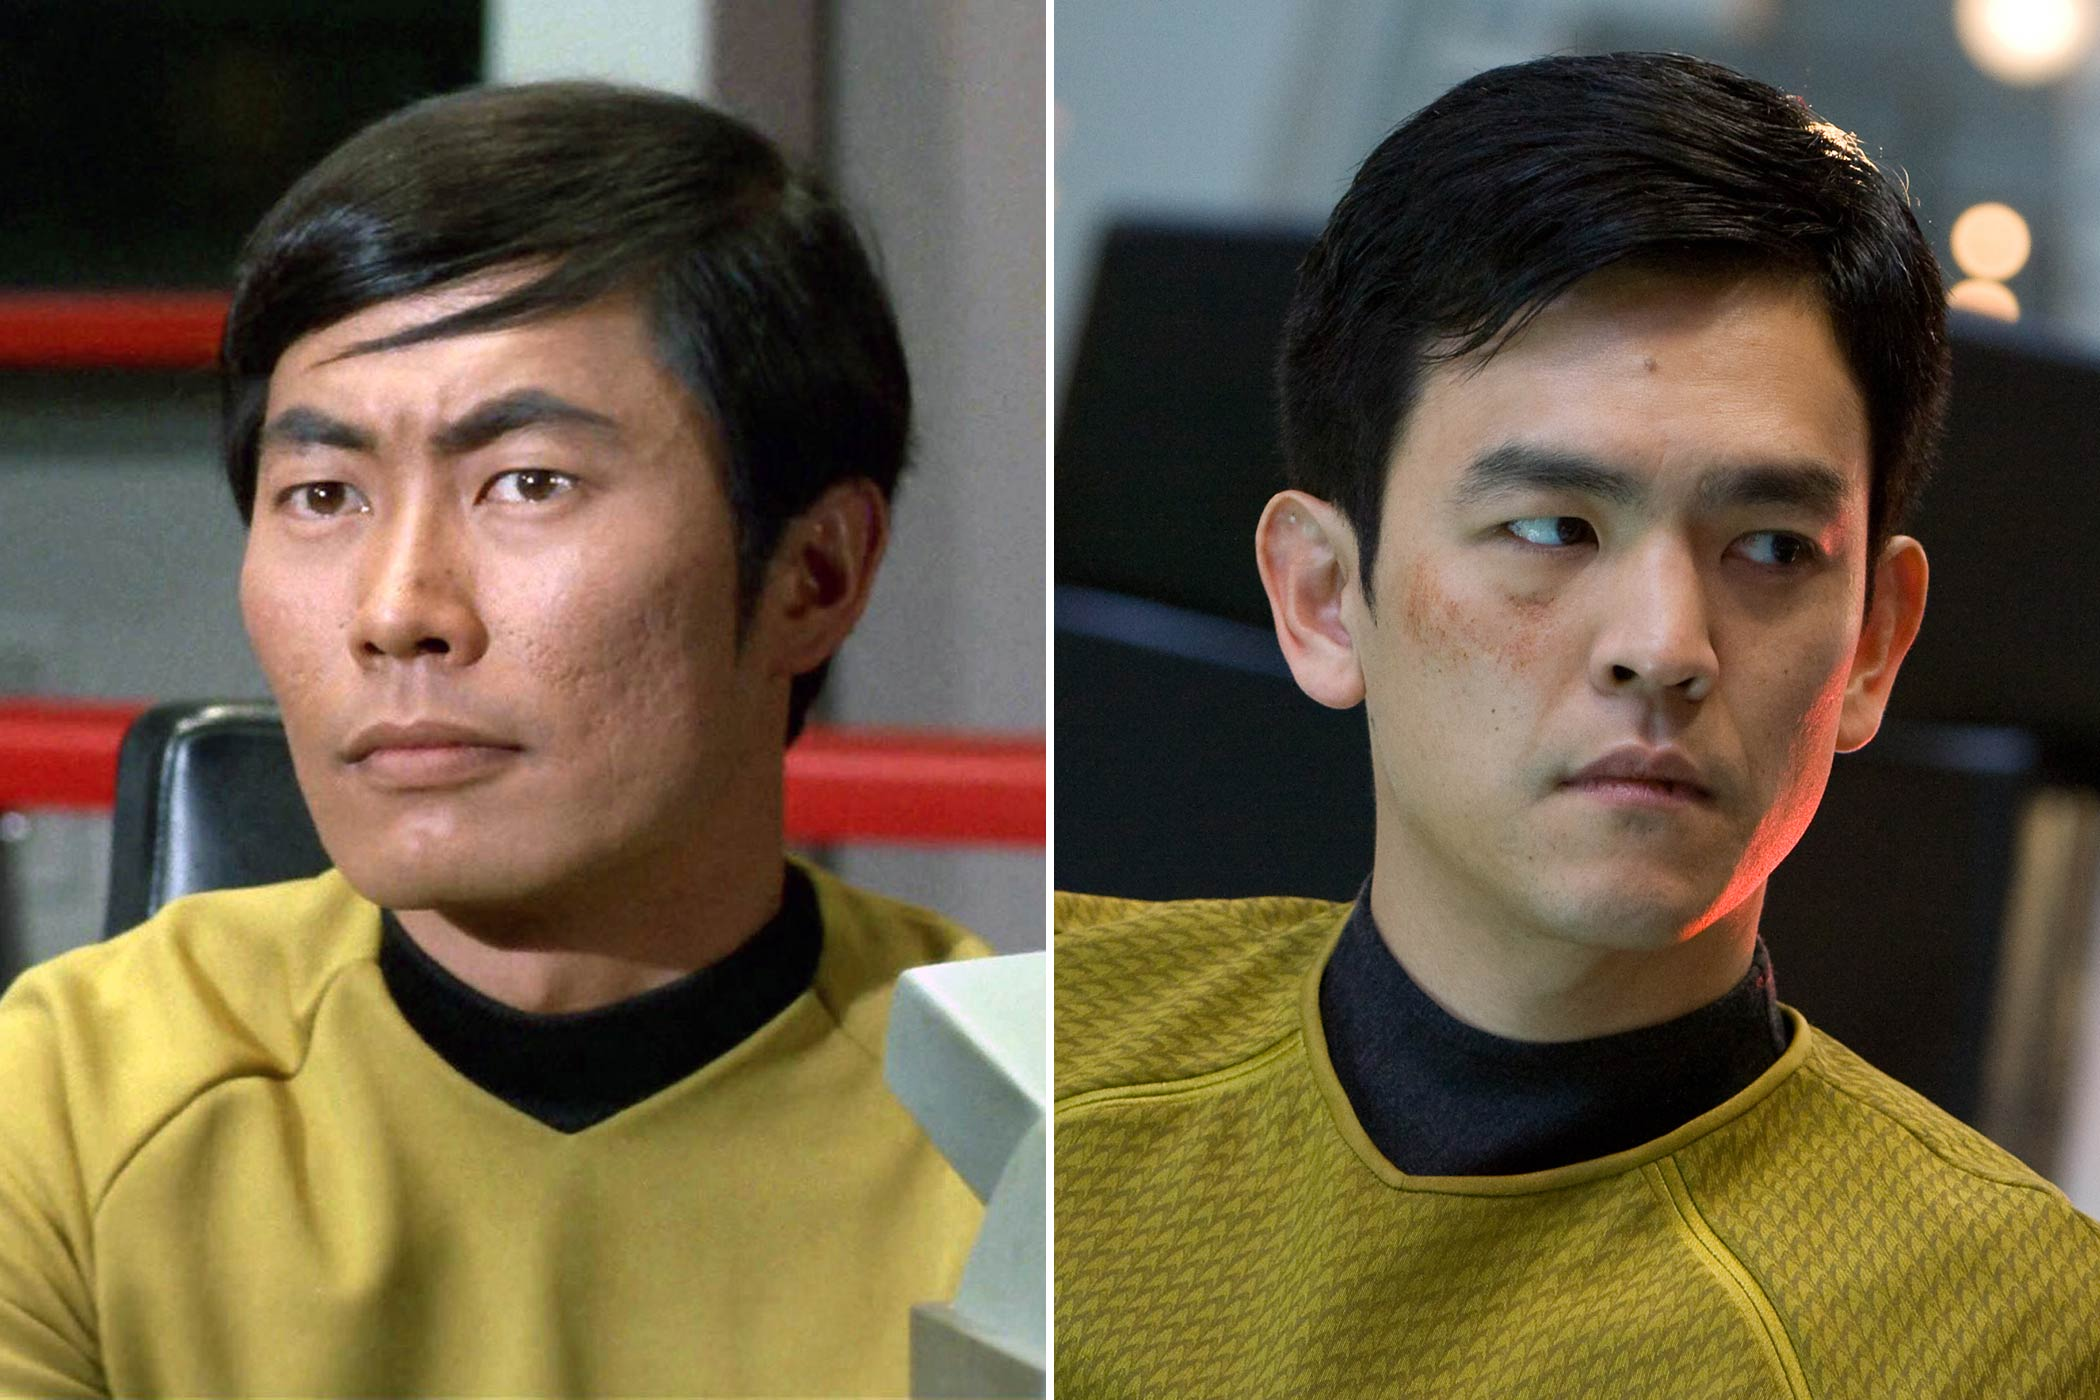 From left: George Takei and John Cho as Hikaru Sulu